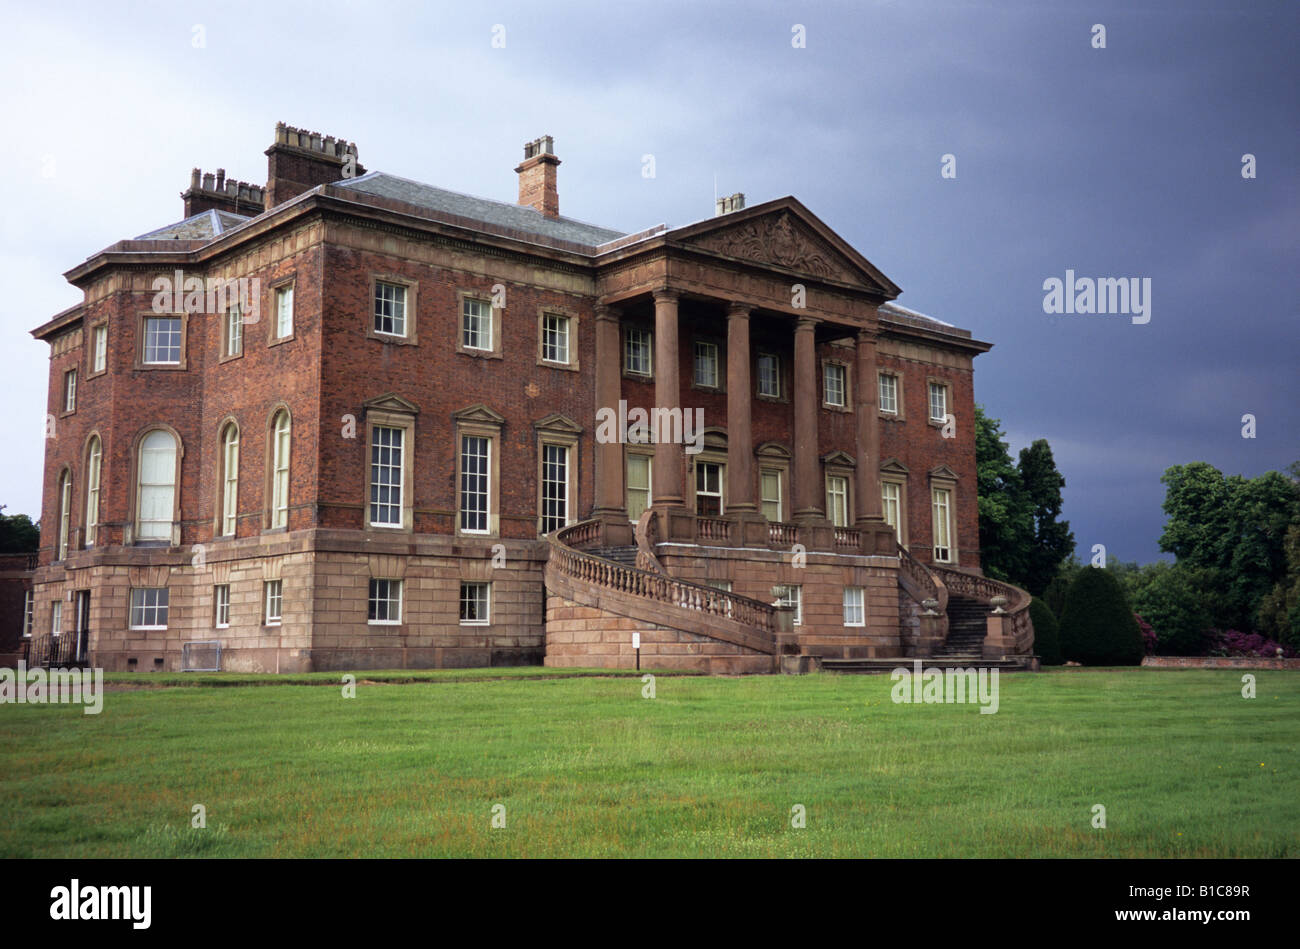 Tabley House Near Knutsford Cheshire - Stock Image